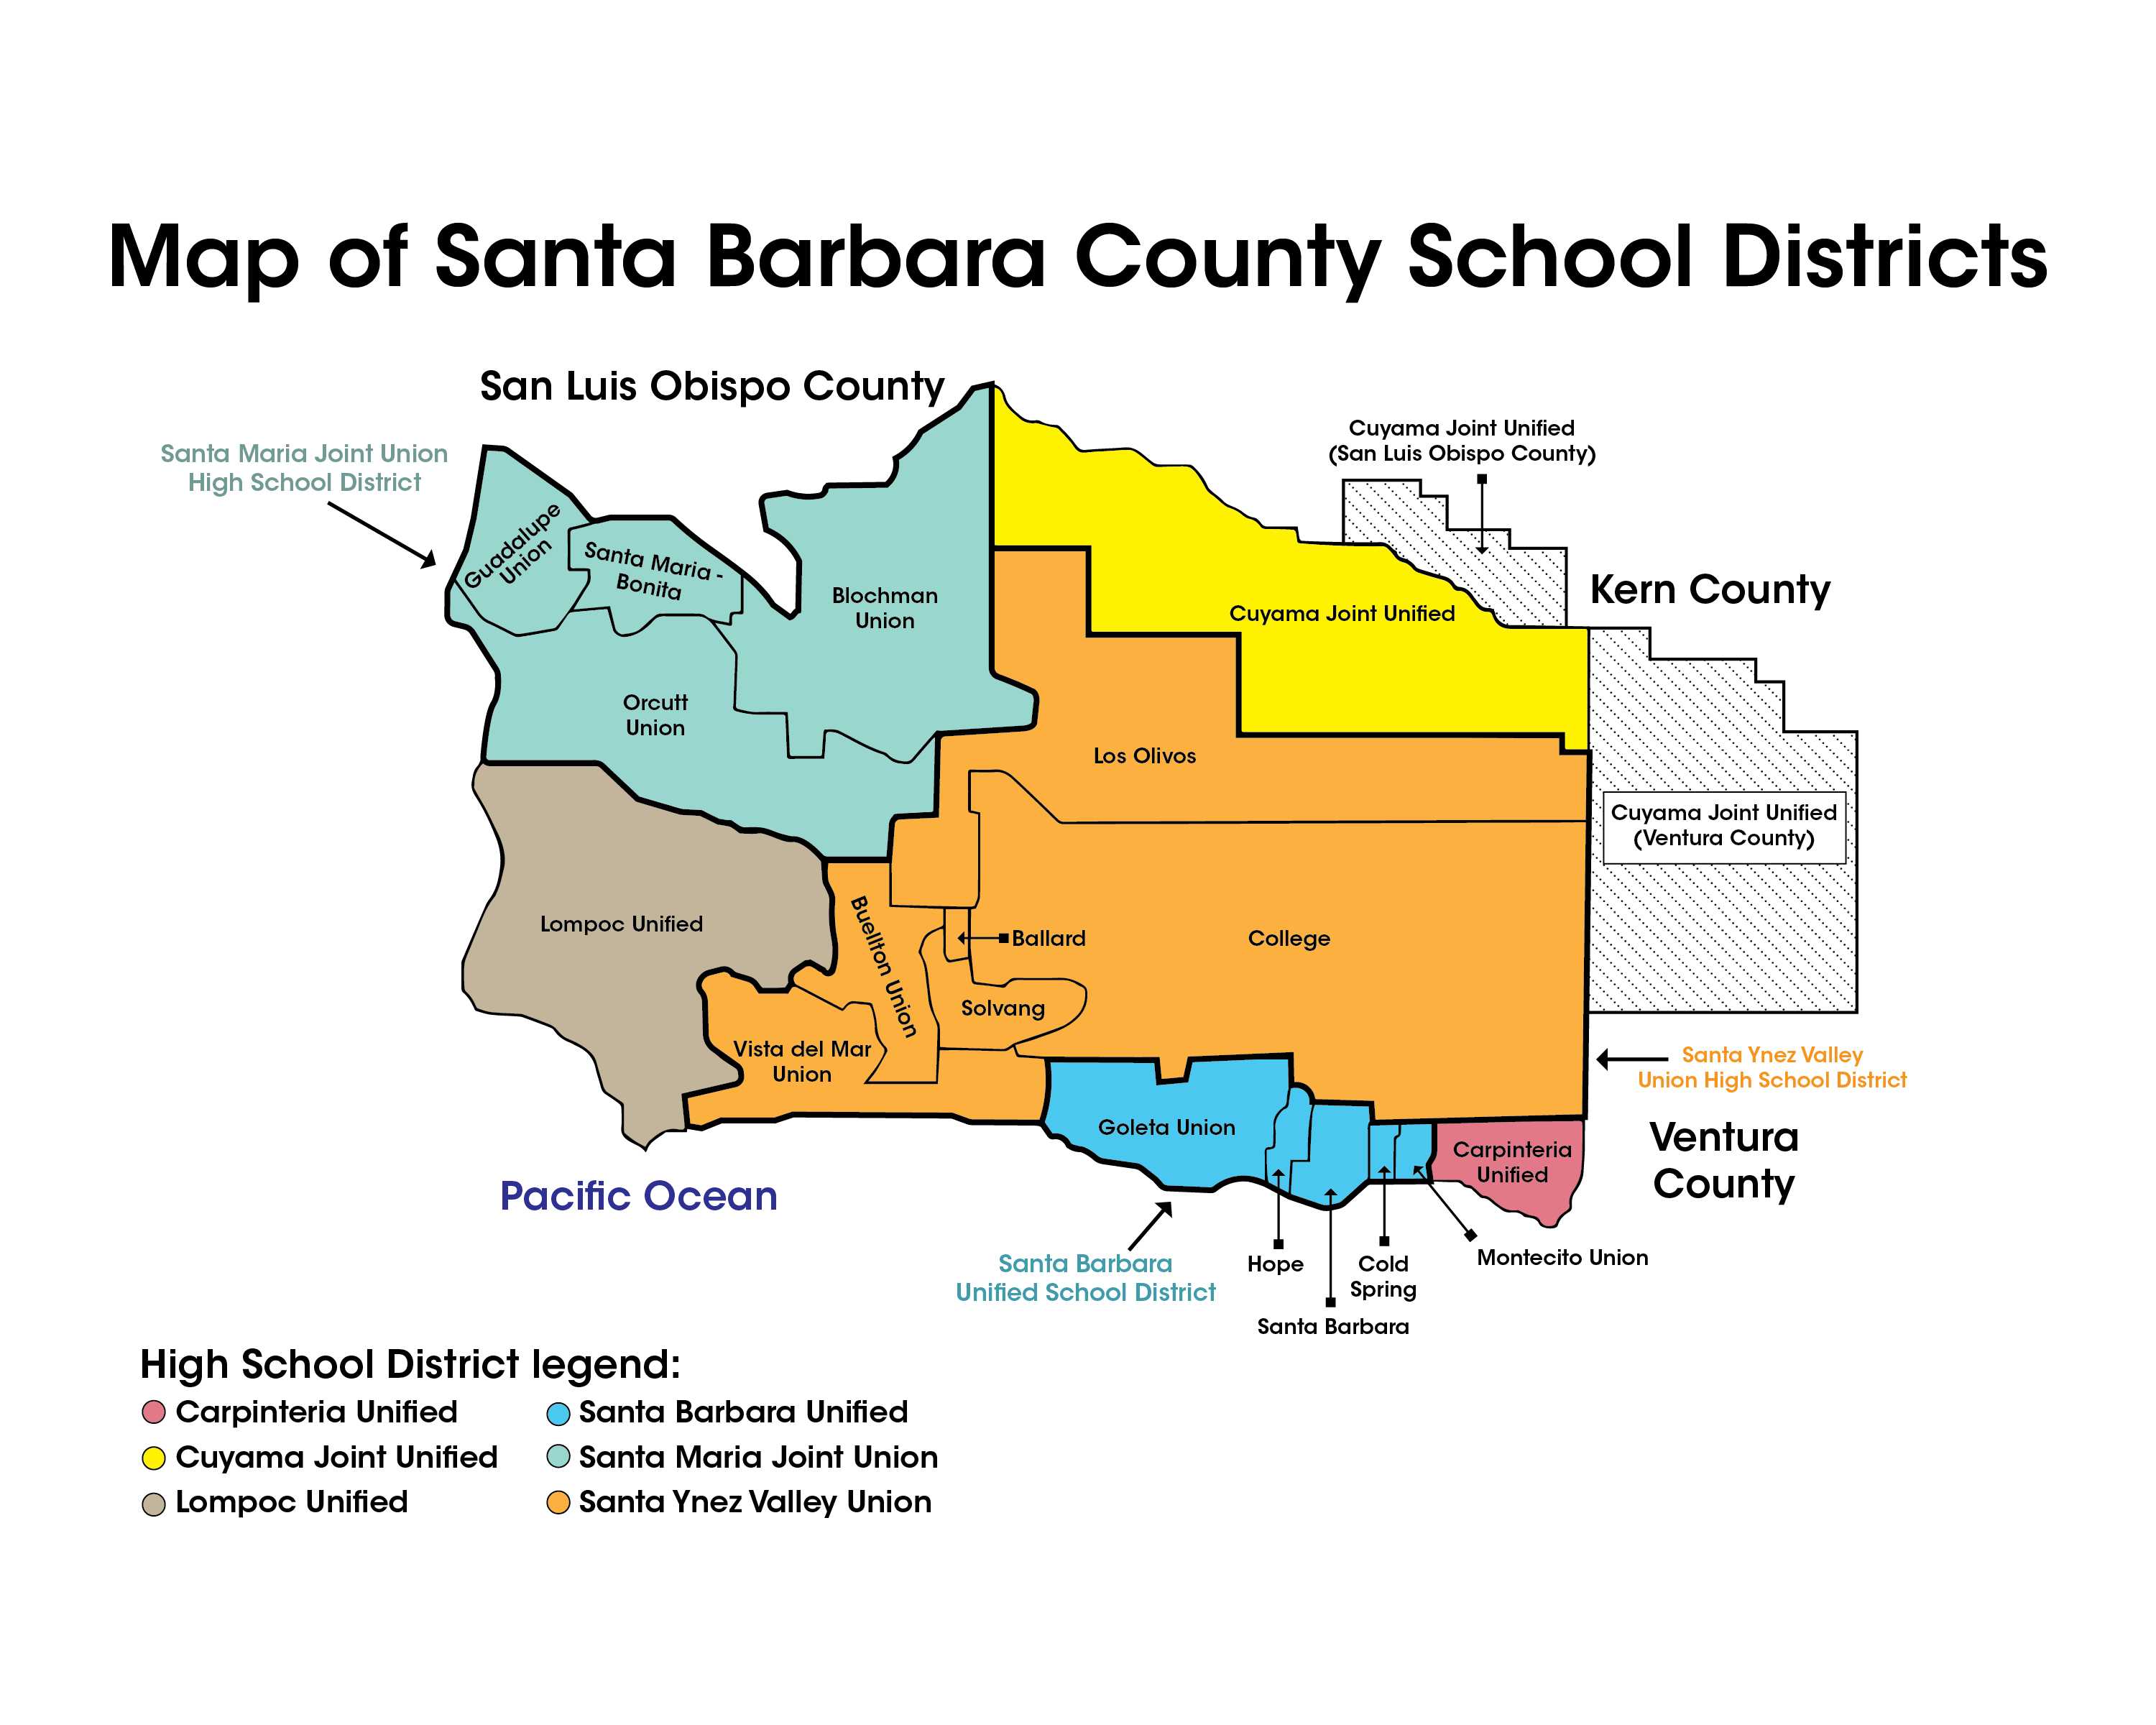 Map of School Districts in Santa Barbara County